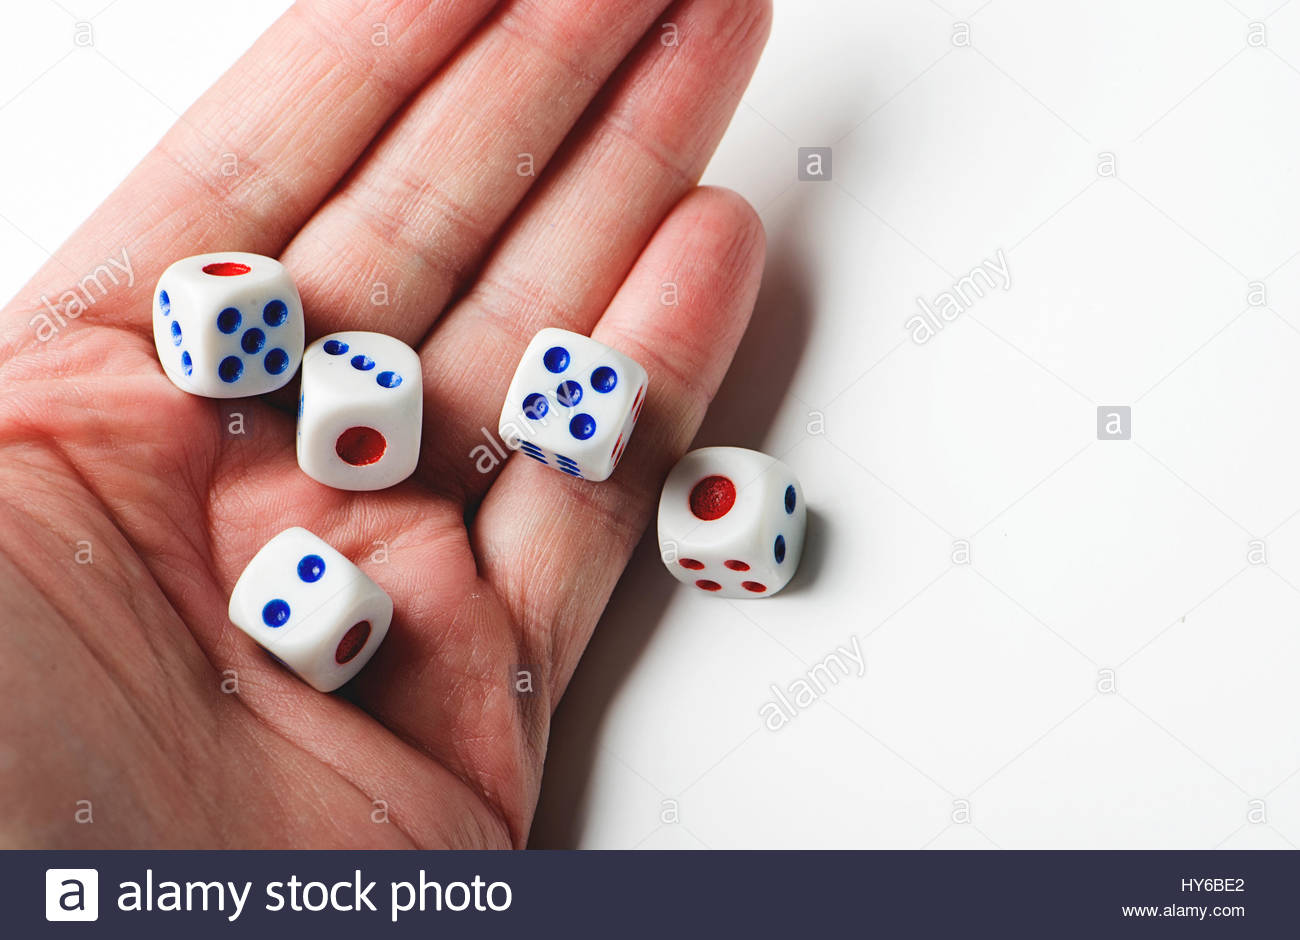 Hand throwing dice on white background. Isolated. Stock Photo